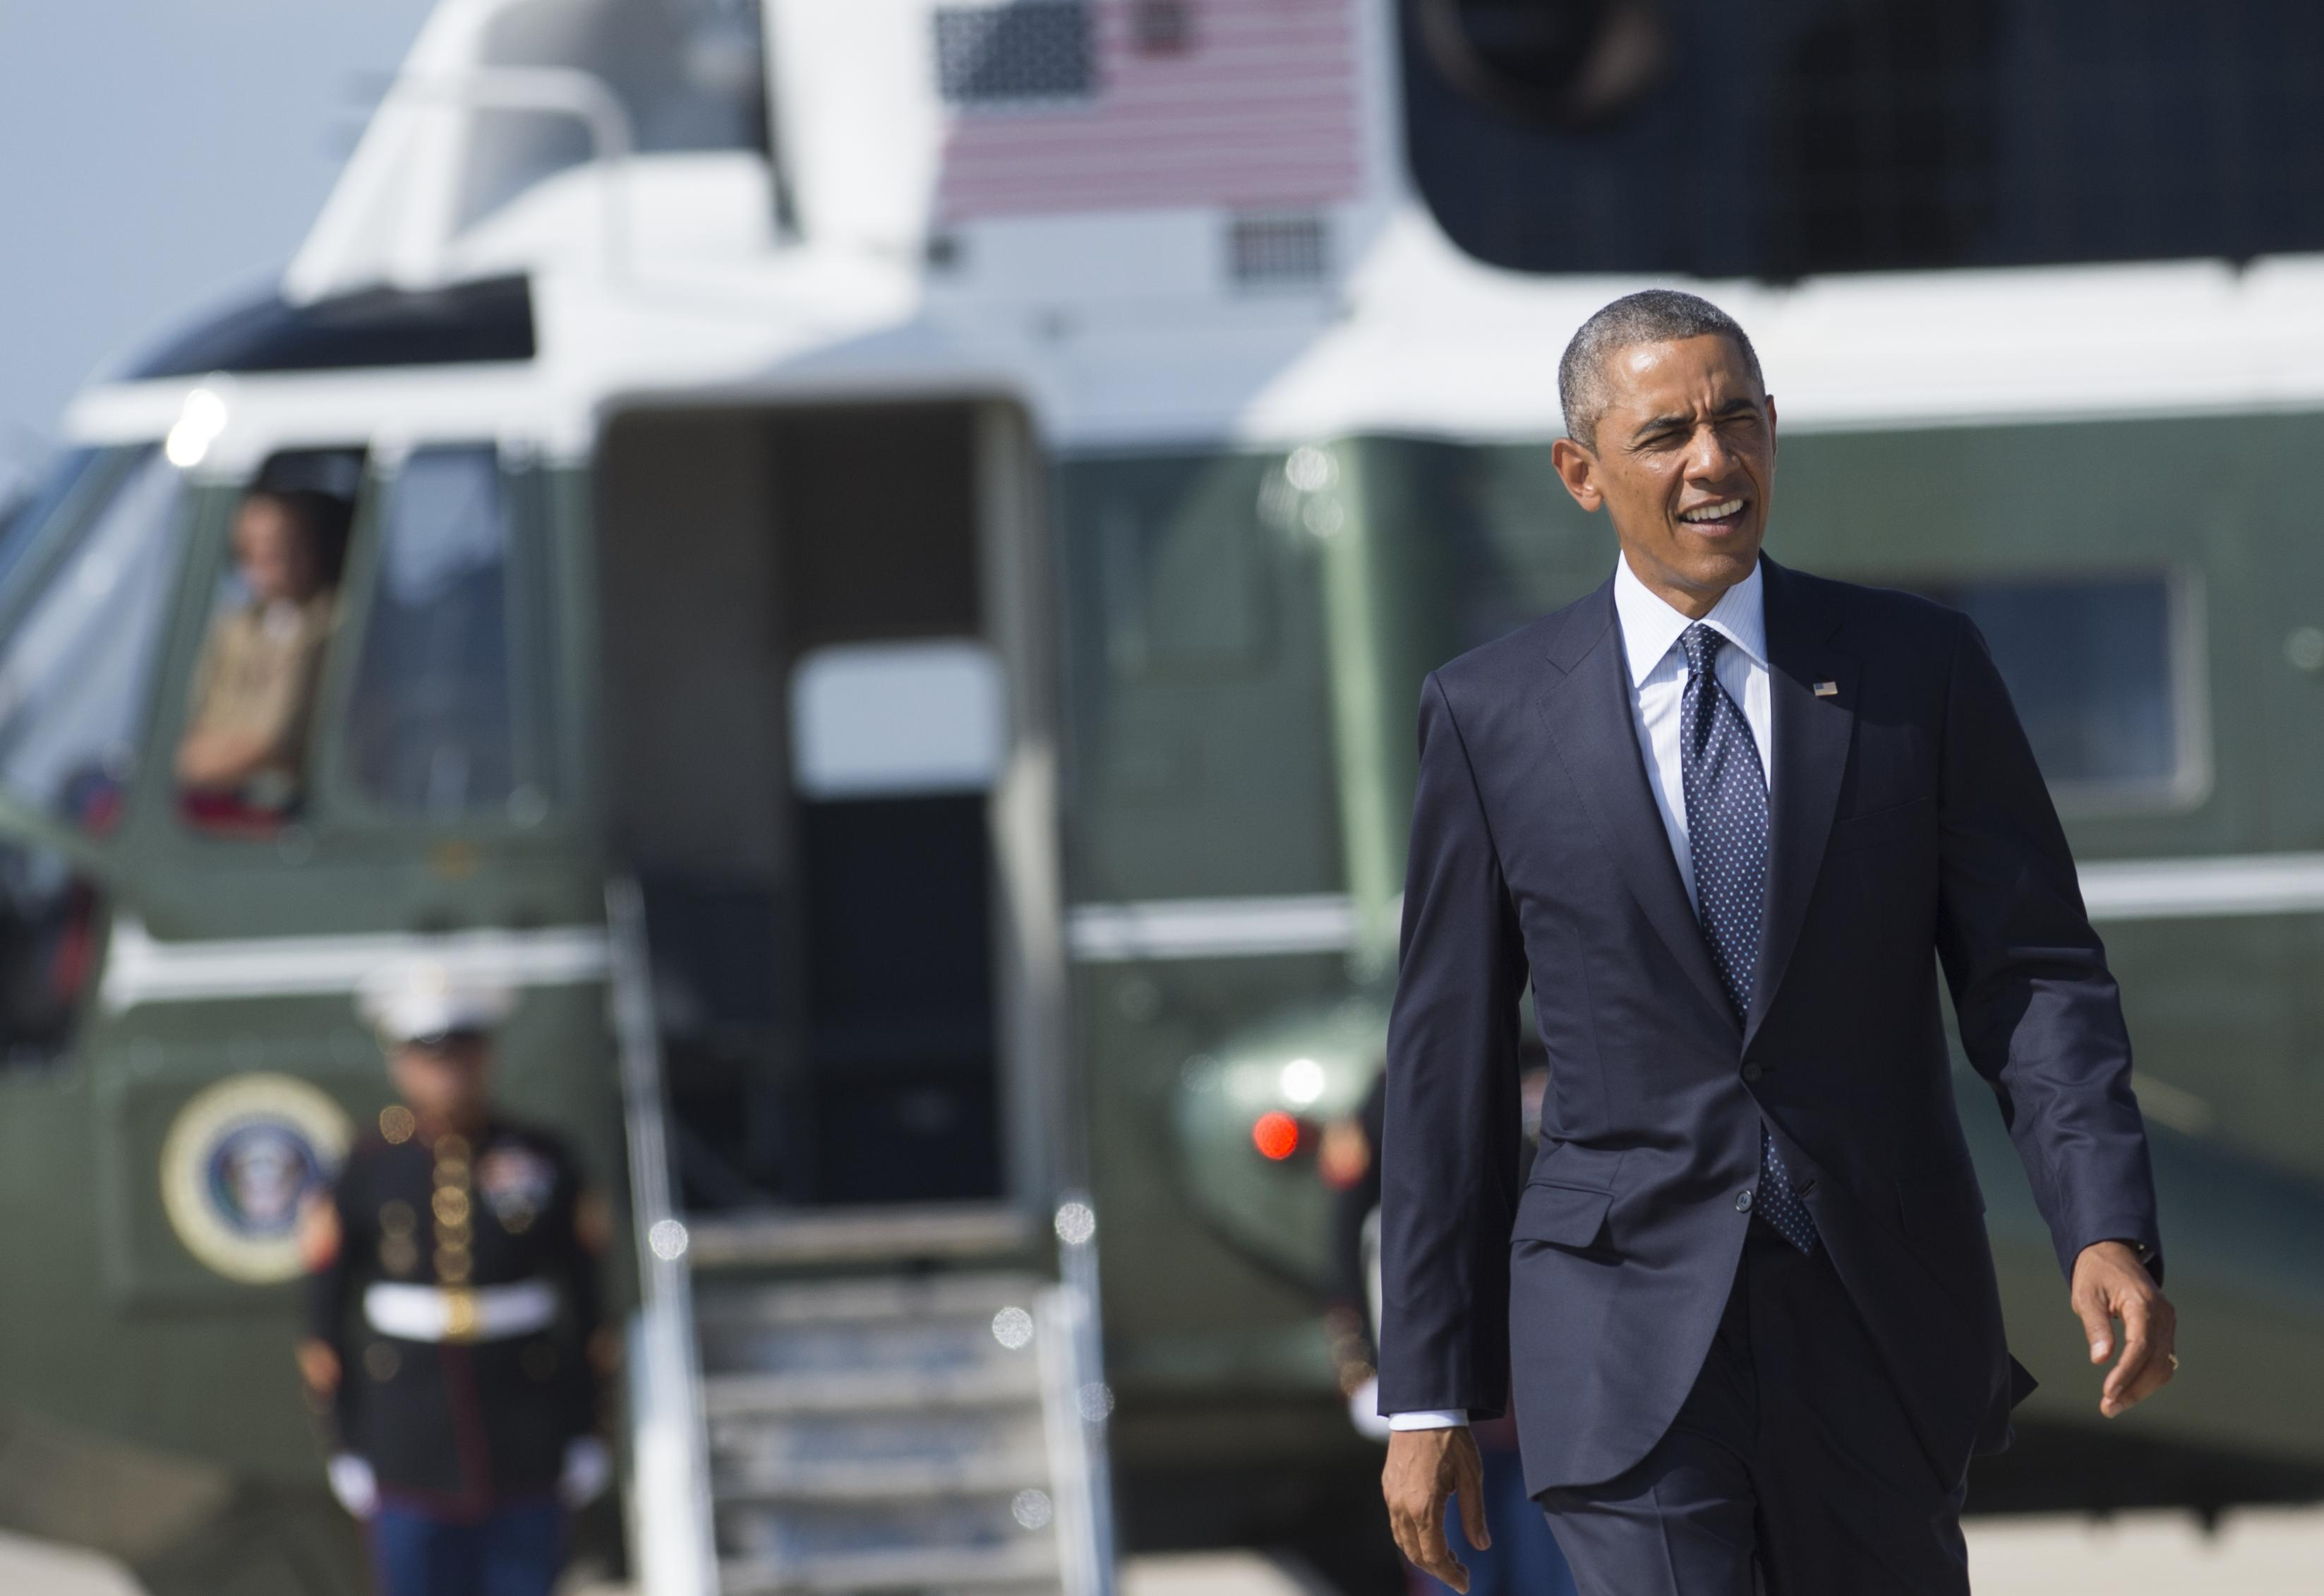 US President Barack Obama walks to Air Force One from Marine One prior to departing from Andrews Air Force Base in Maryland, September 2, 2014 (AFP Photo/Saul Loeb)